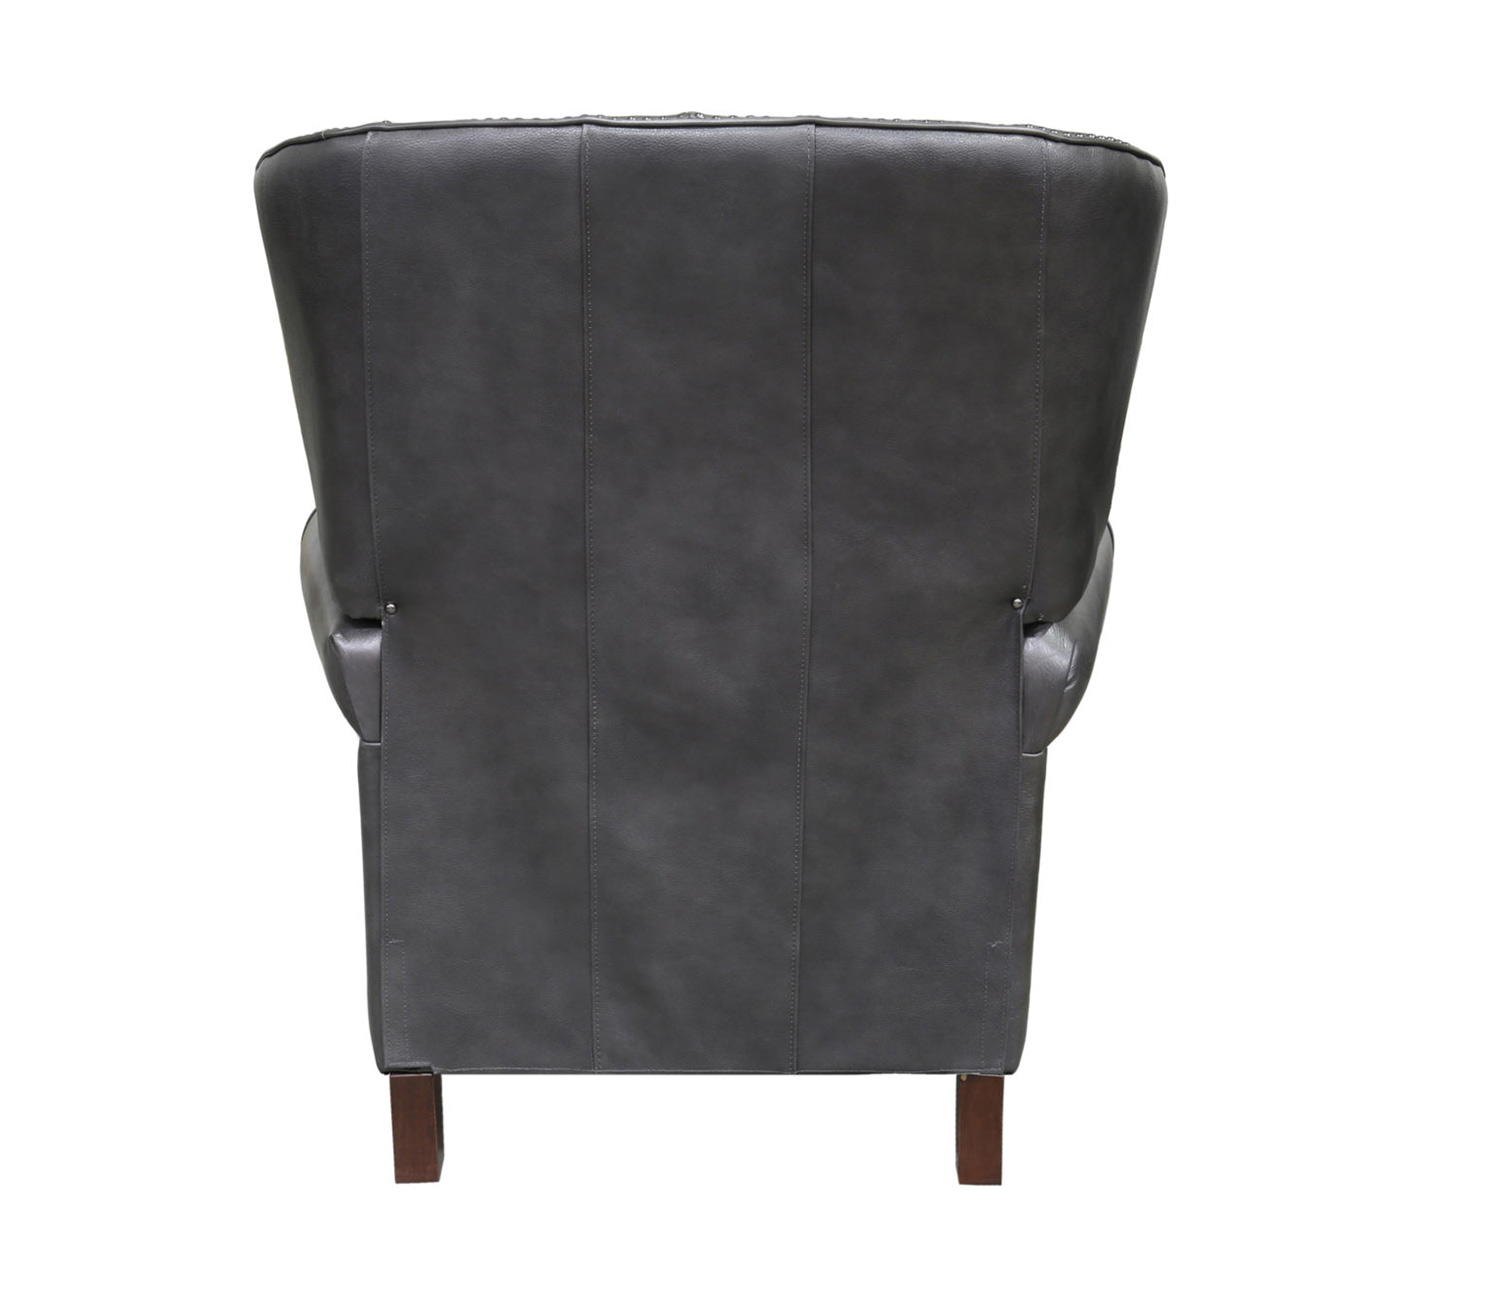 Barcalounger Presidential Recliner Chair - Wrenn Gray/all leather